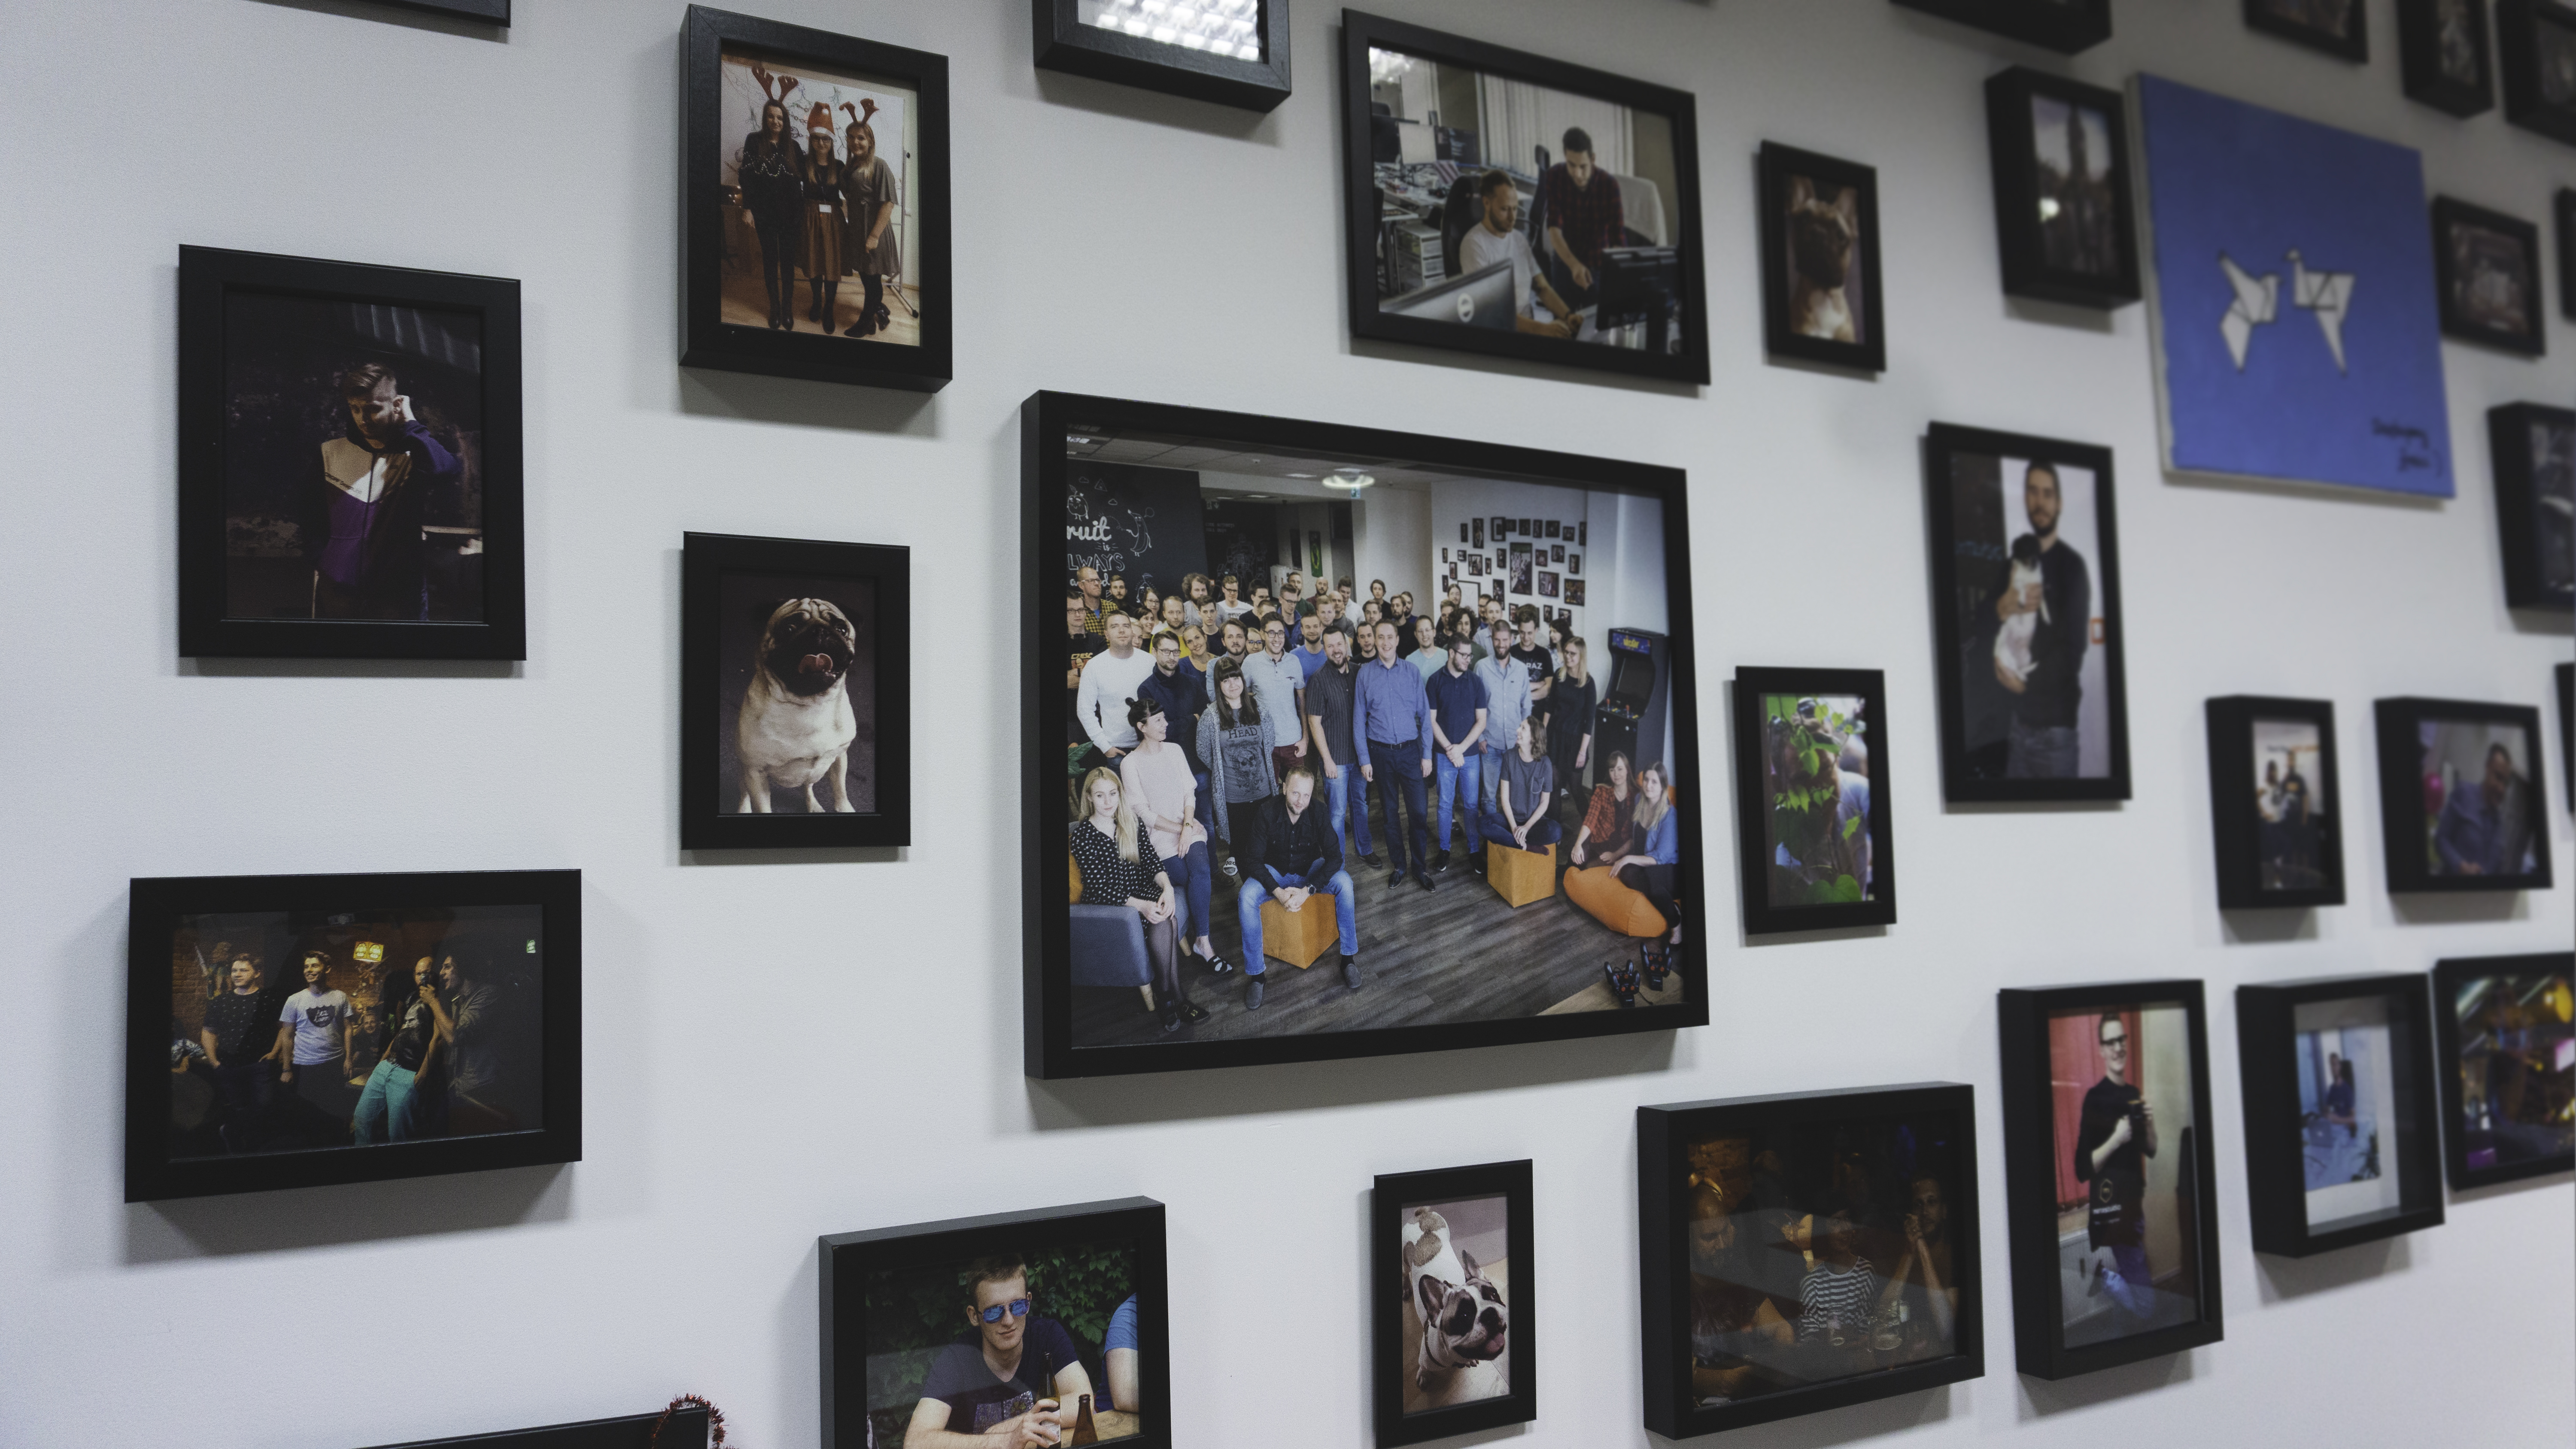 Merixstudio pictures on the wall